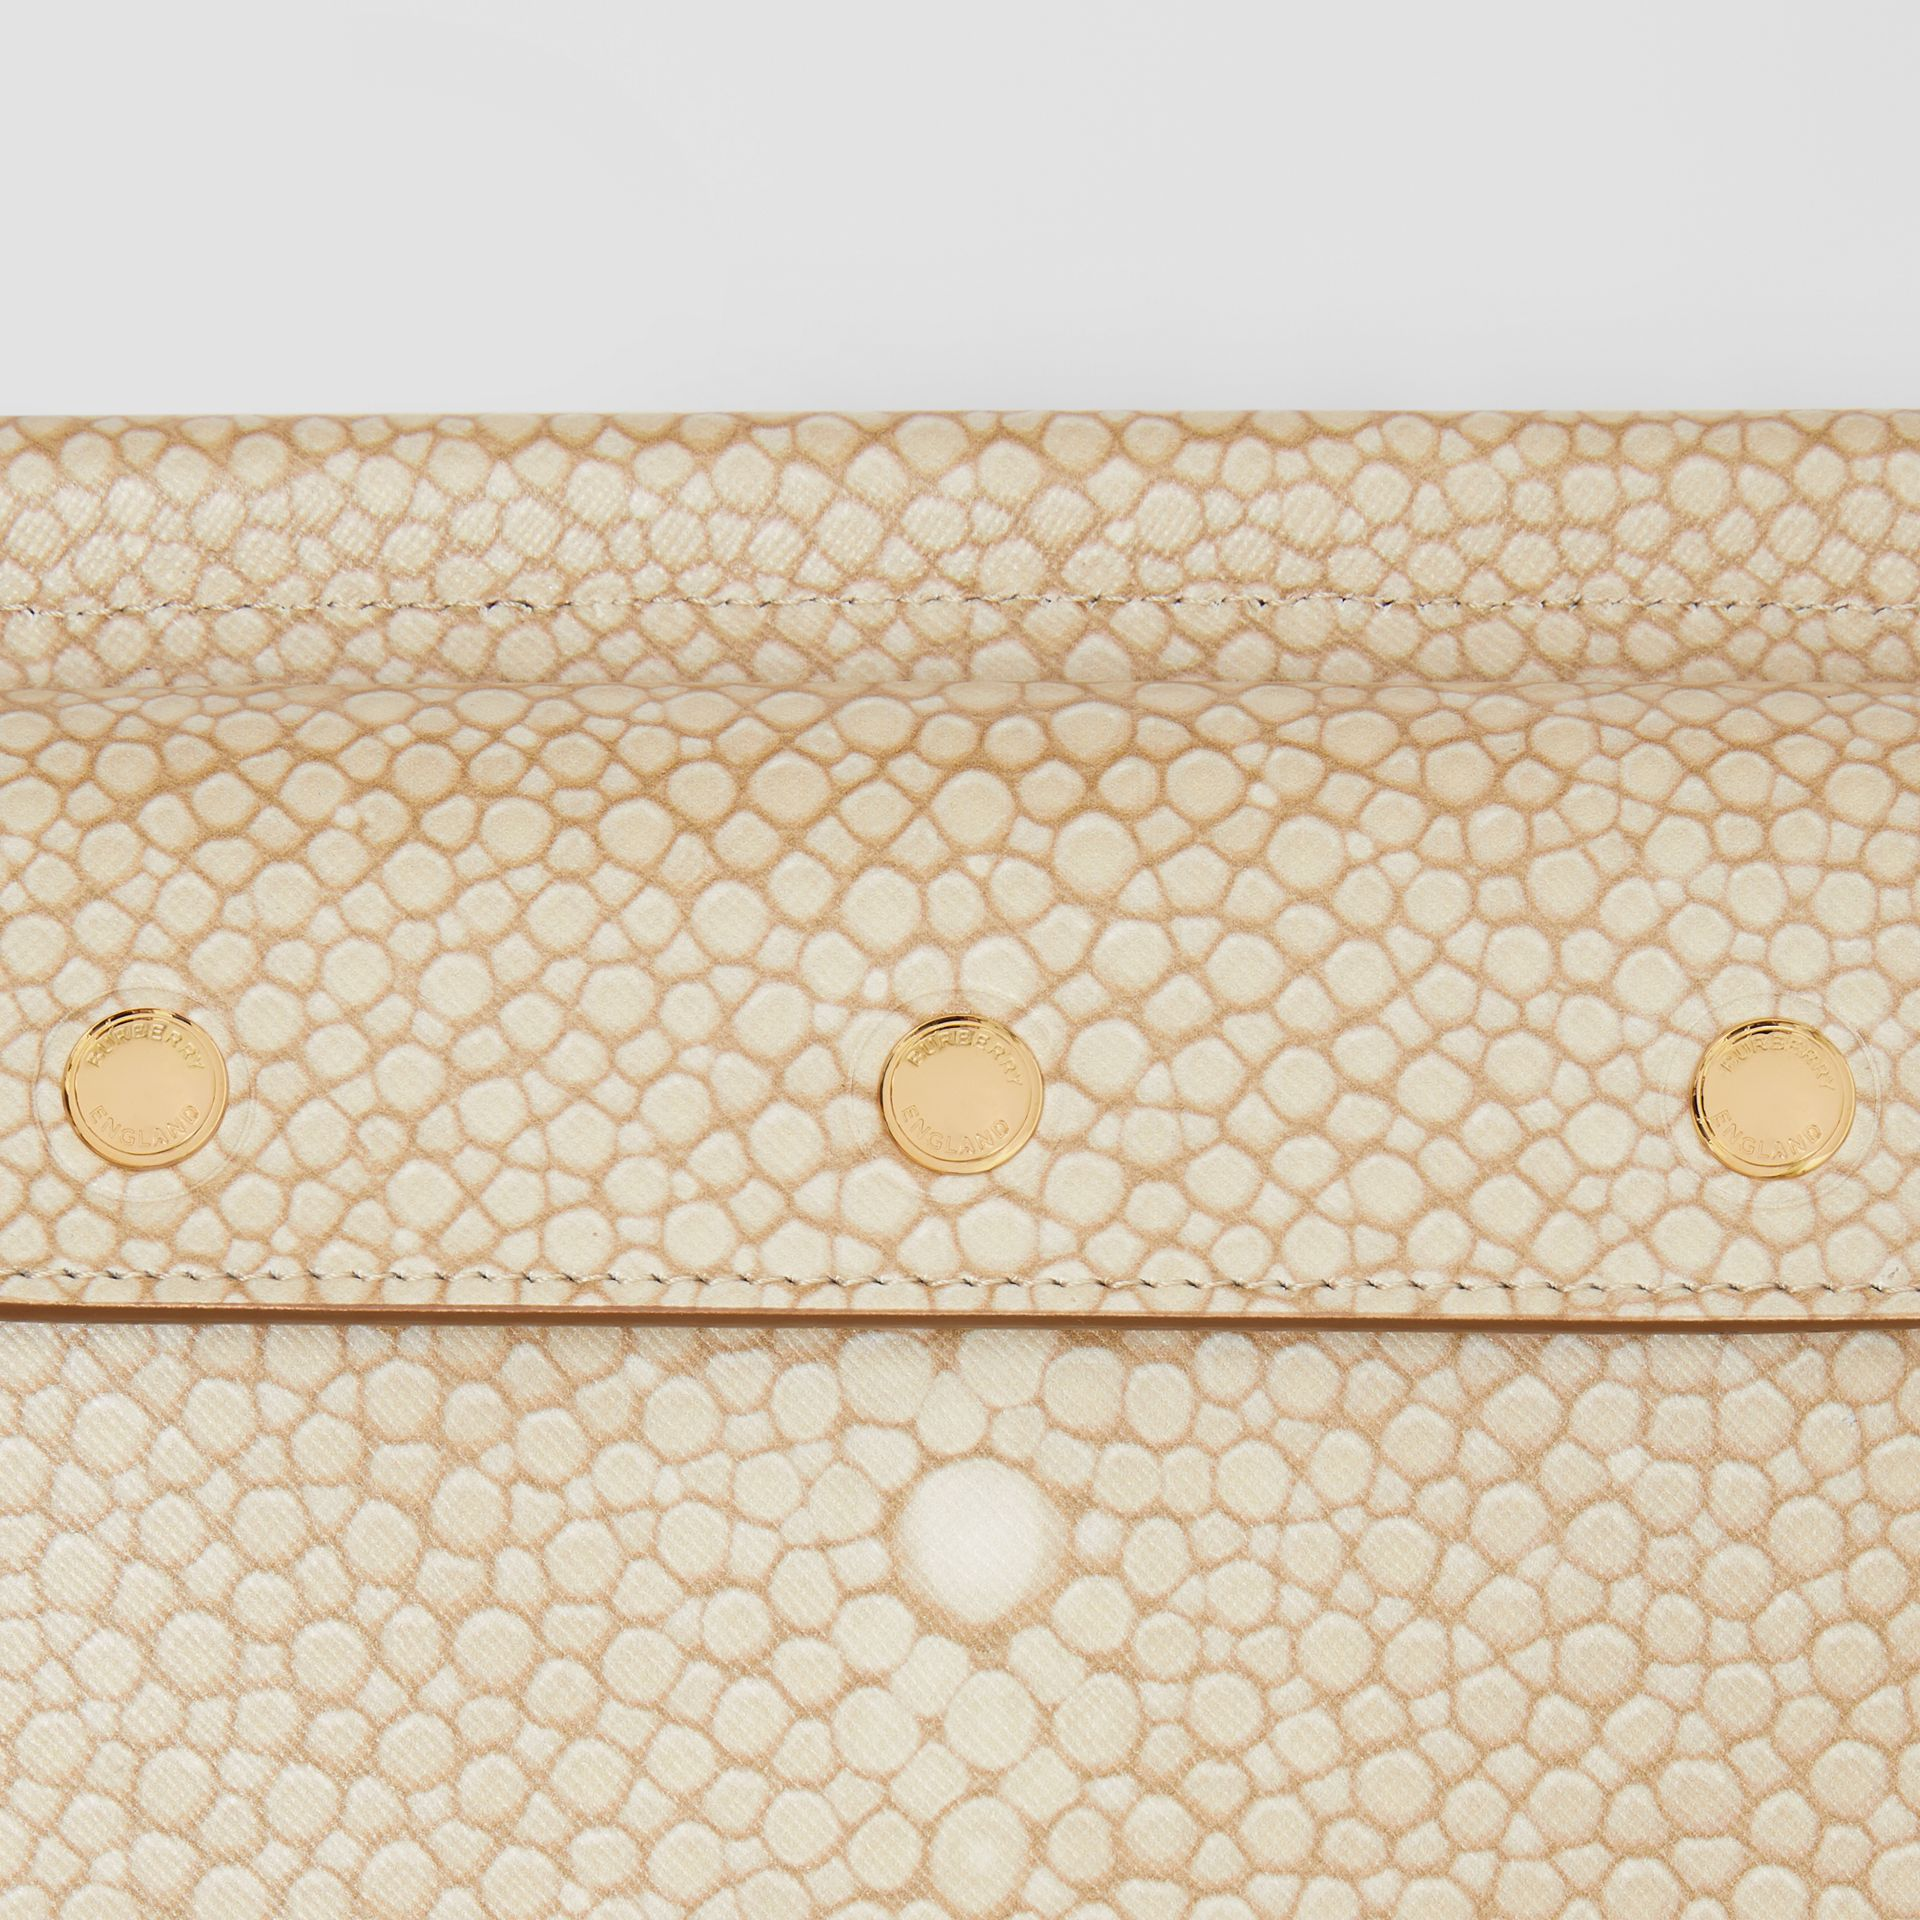 Mini Fish-scale Print Title Bag with Pocket Detail in Light Sand - Women | Burberry United Kingdom - gallery image 1